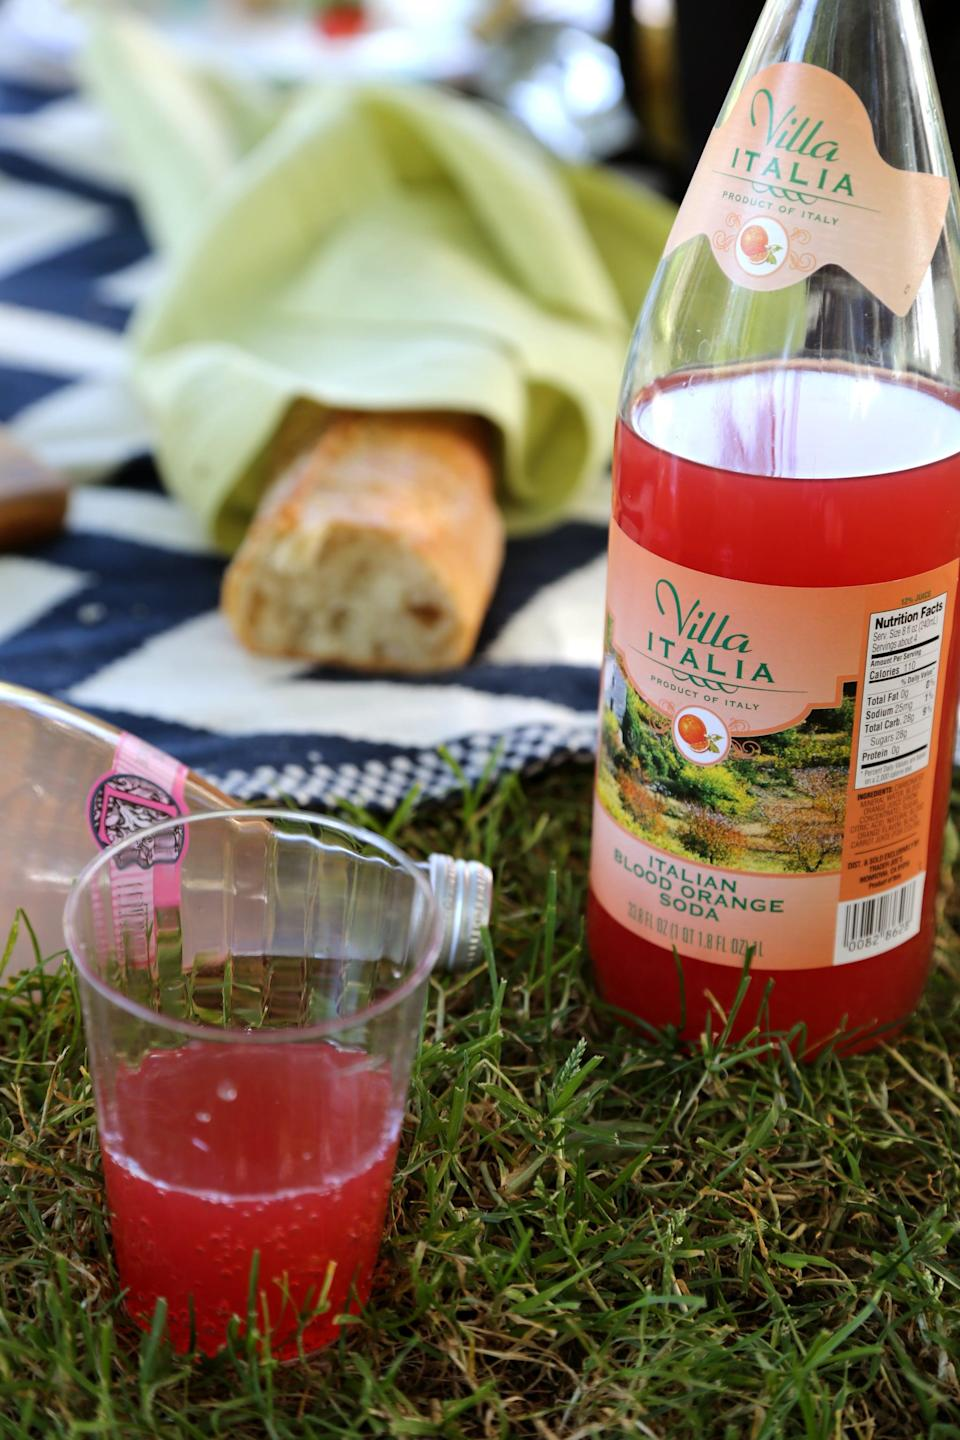 <p>Time to toss it back! Be sure you have enough cups for your beverages so no one has to sip them out of the bottles. If you're bringing beer or wine, double check that you have bottle openers before you embark on your picnic. </p>